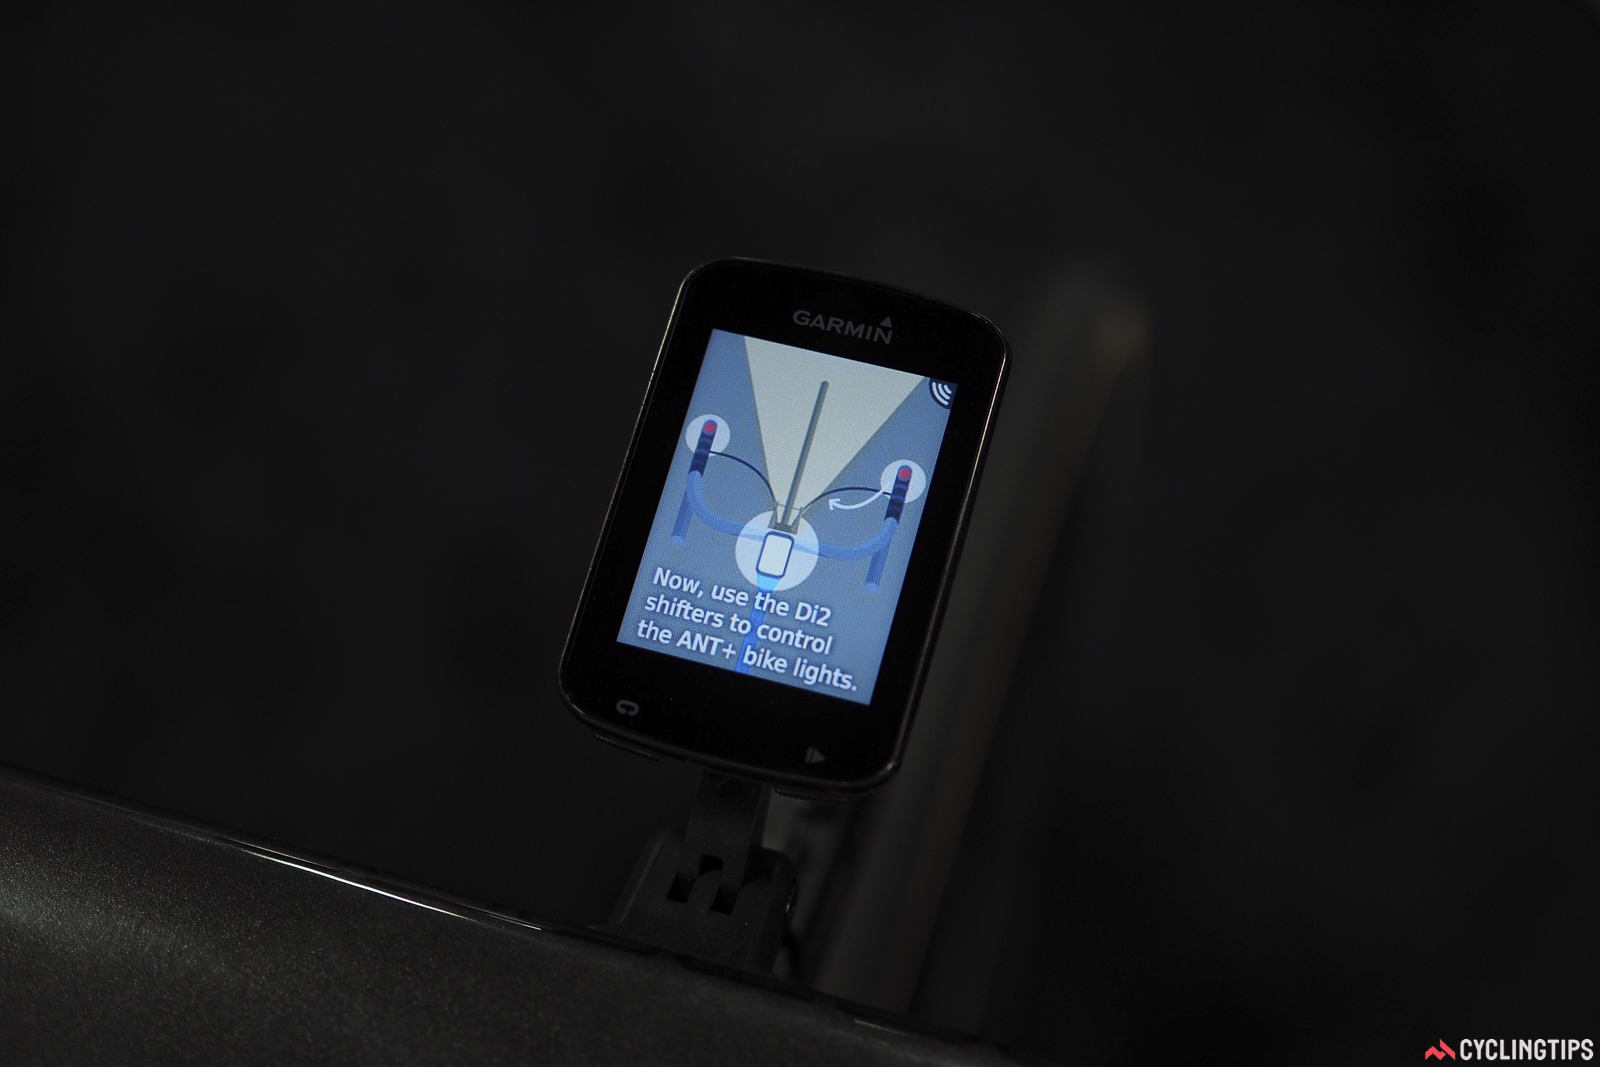 Ever wondered what those mystery buttons on top of Shimano Di2 levers did? Wonder no more, as you can use them to control a few different functions on the most recent Garmin Edge computers.